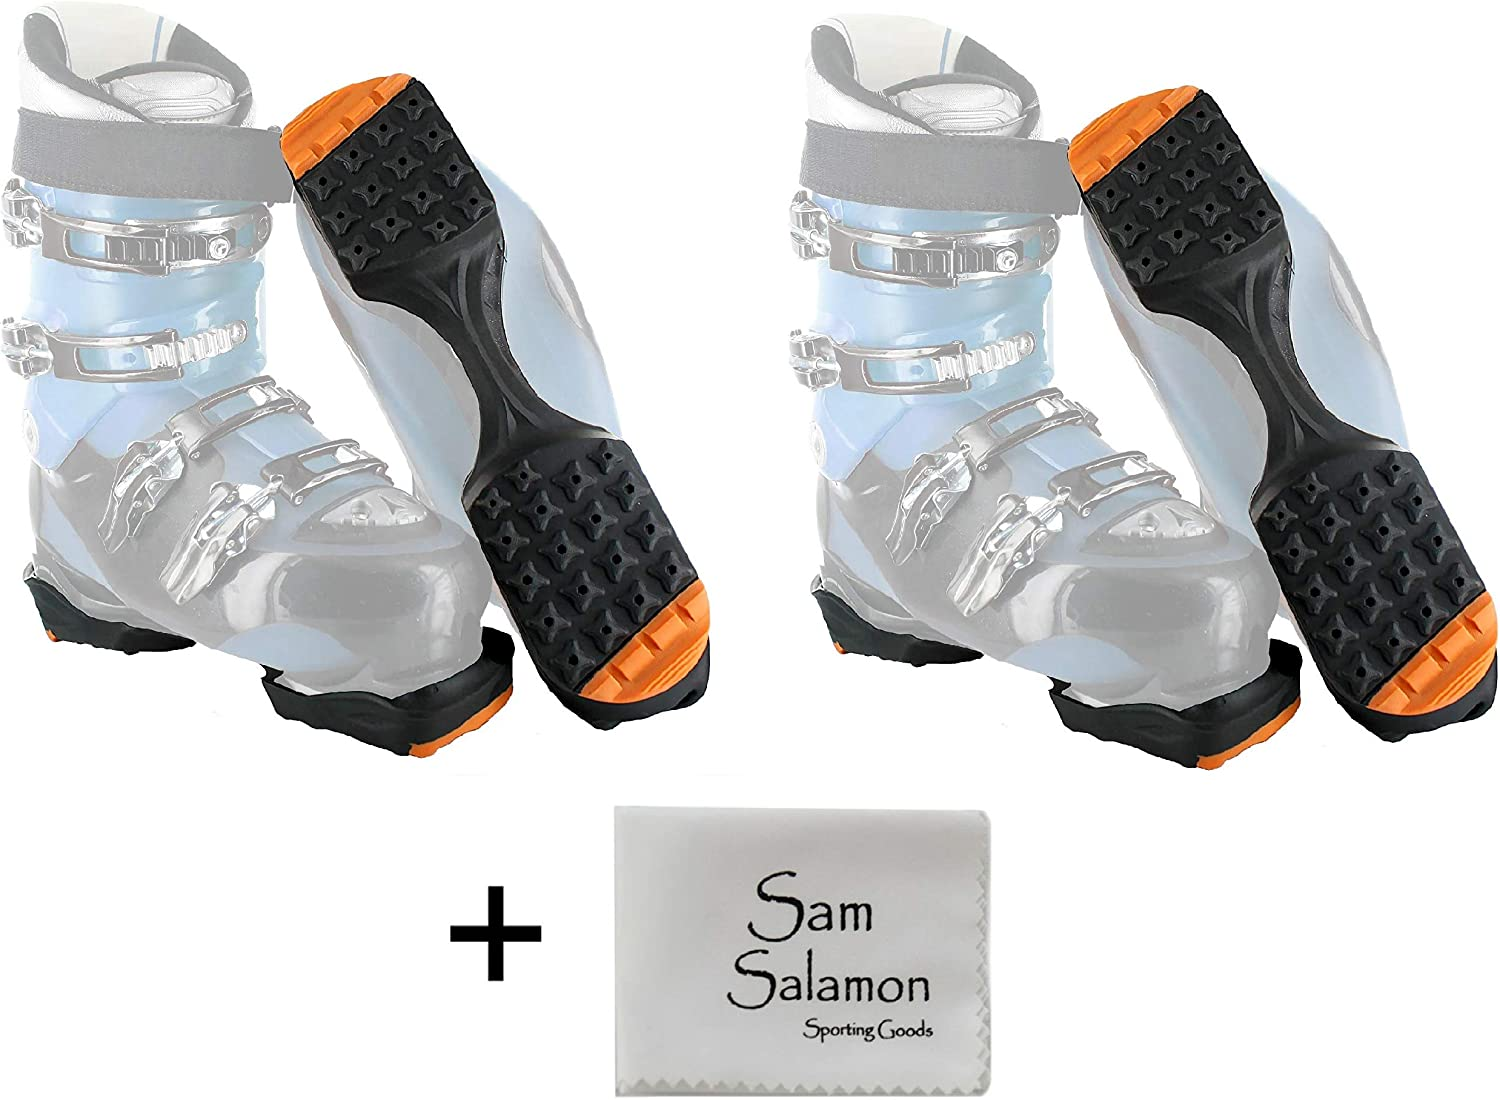 Yaktrax SkiTrax Ski Boot Tracks Traction and Protection Cleats (2 Pair) w/Micro Sam Salamon Cloth